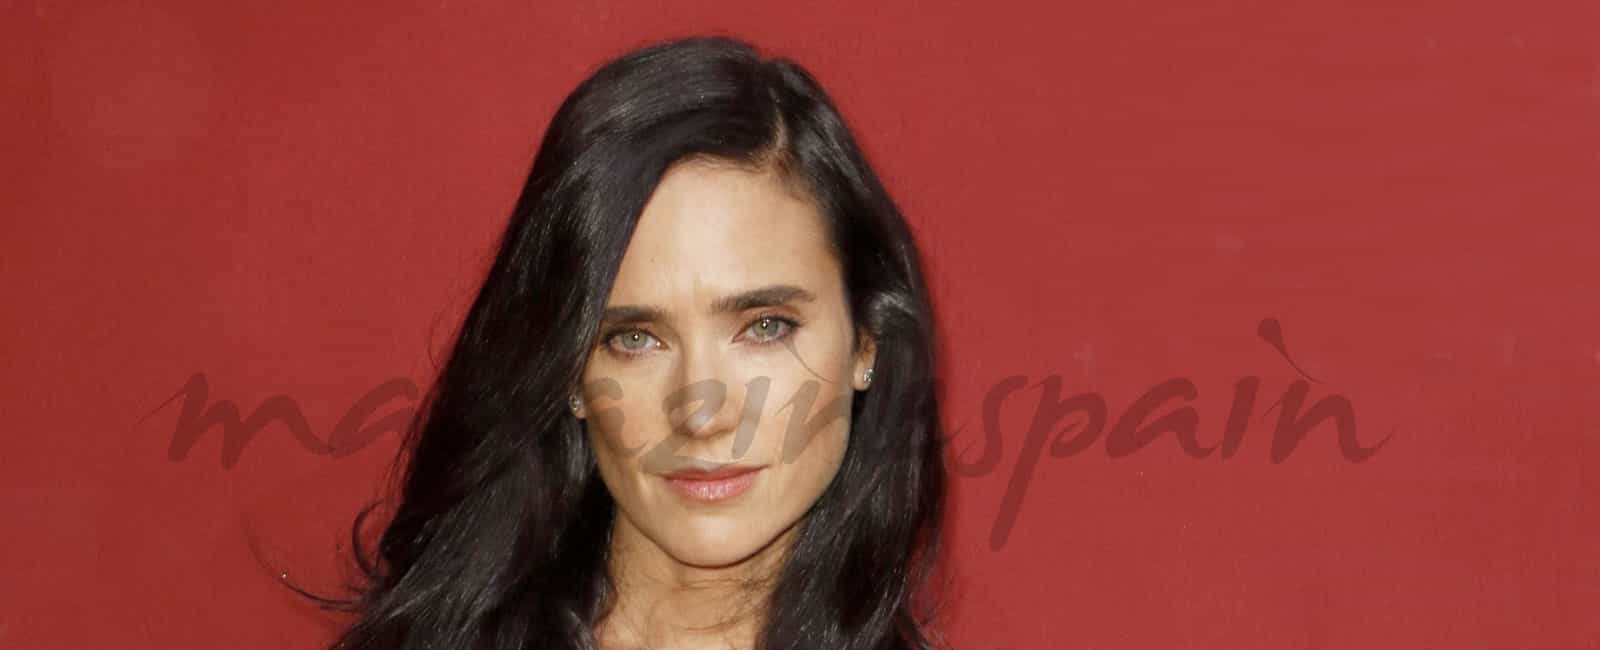 Así eran, Así son: Jennifer Connelly 2006-2016